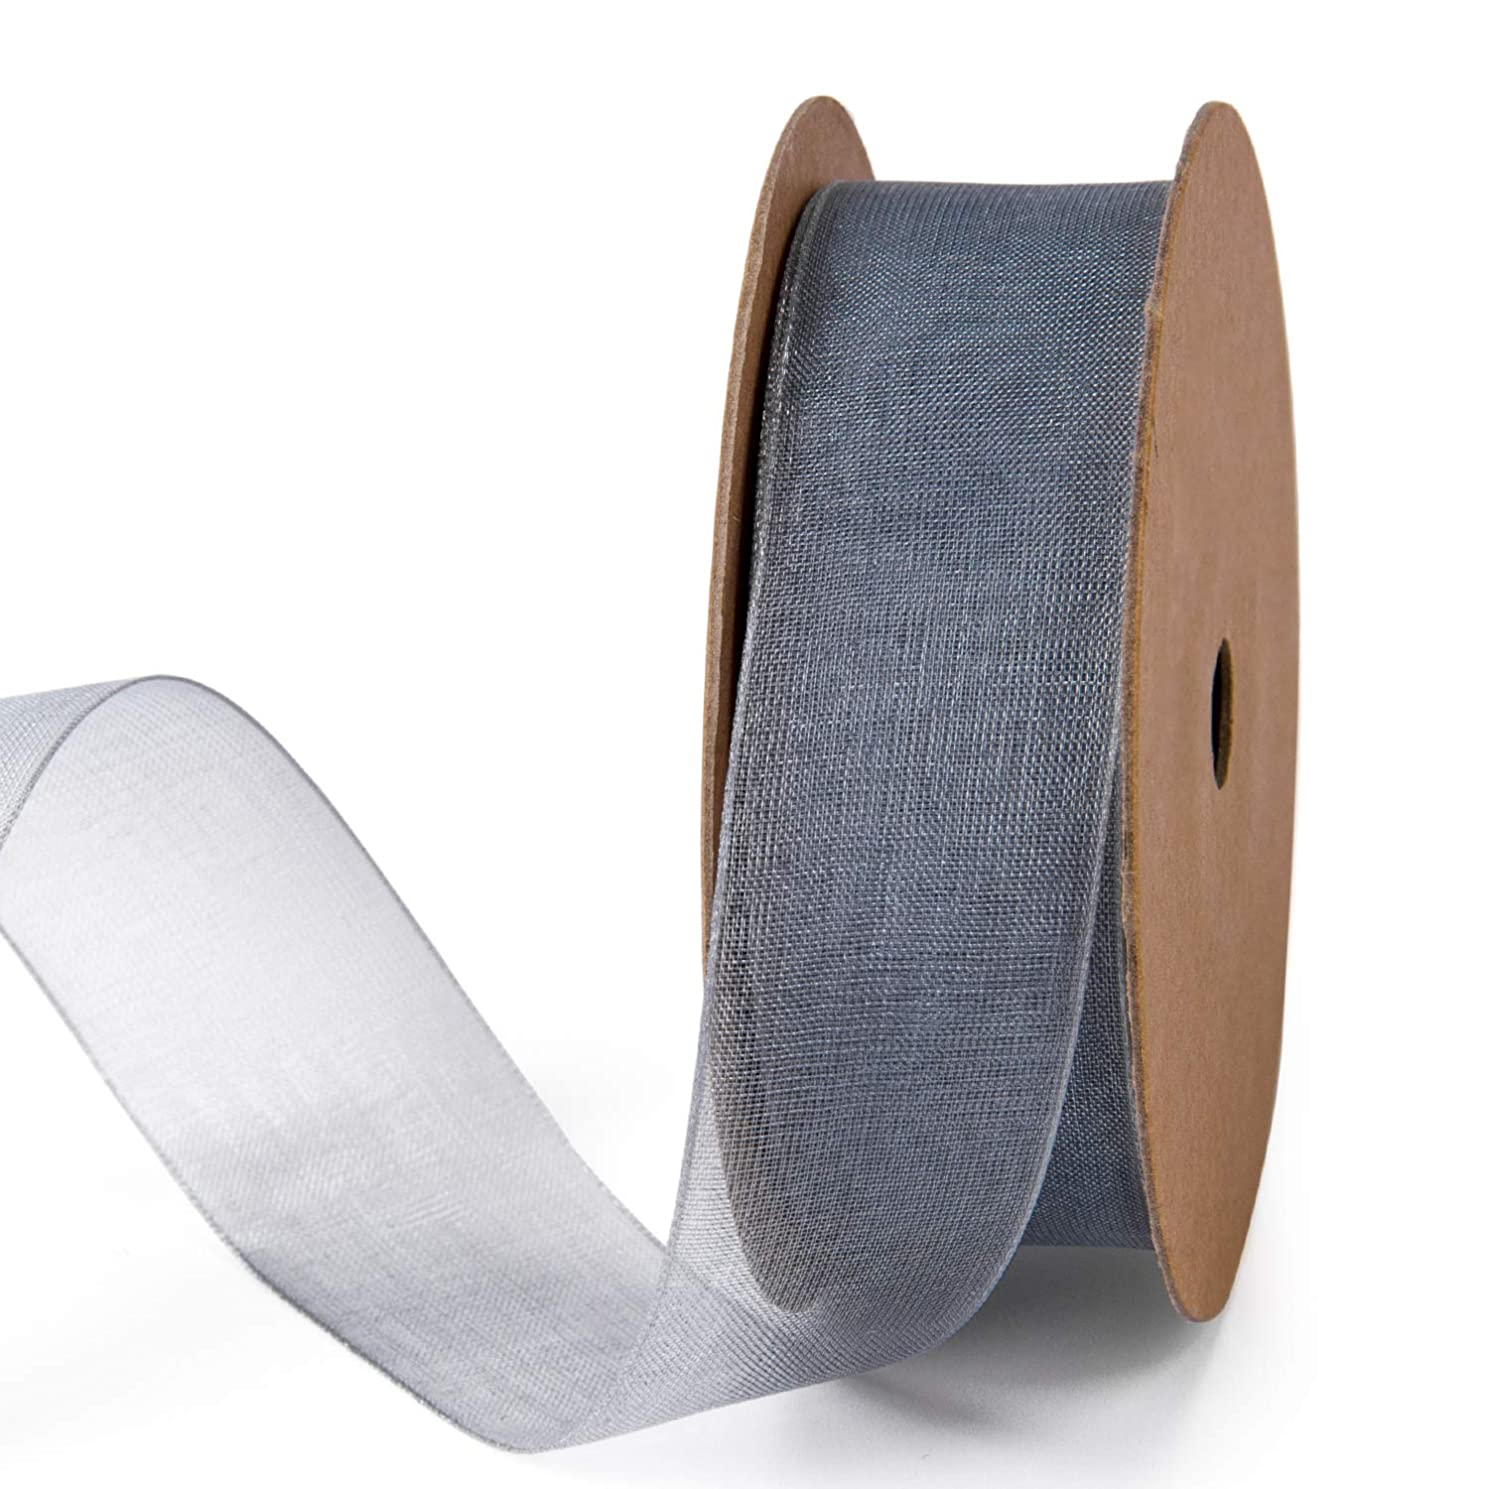 LaRibbons 1 Inch Sheer Organza Ribbon - 25 Yards for Gift Wrappping, Bouquet Wrapping, Decoration, Craft - Grey